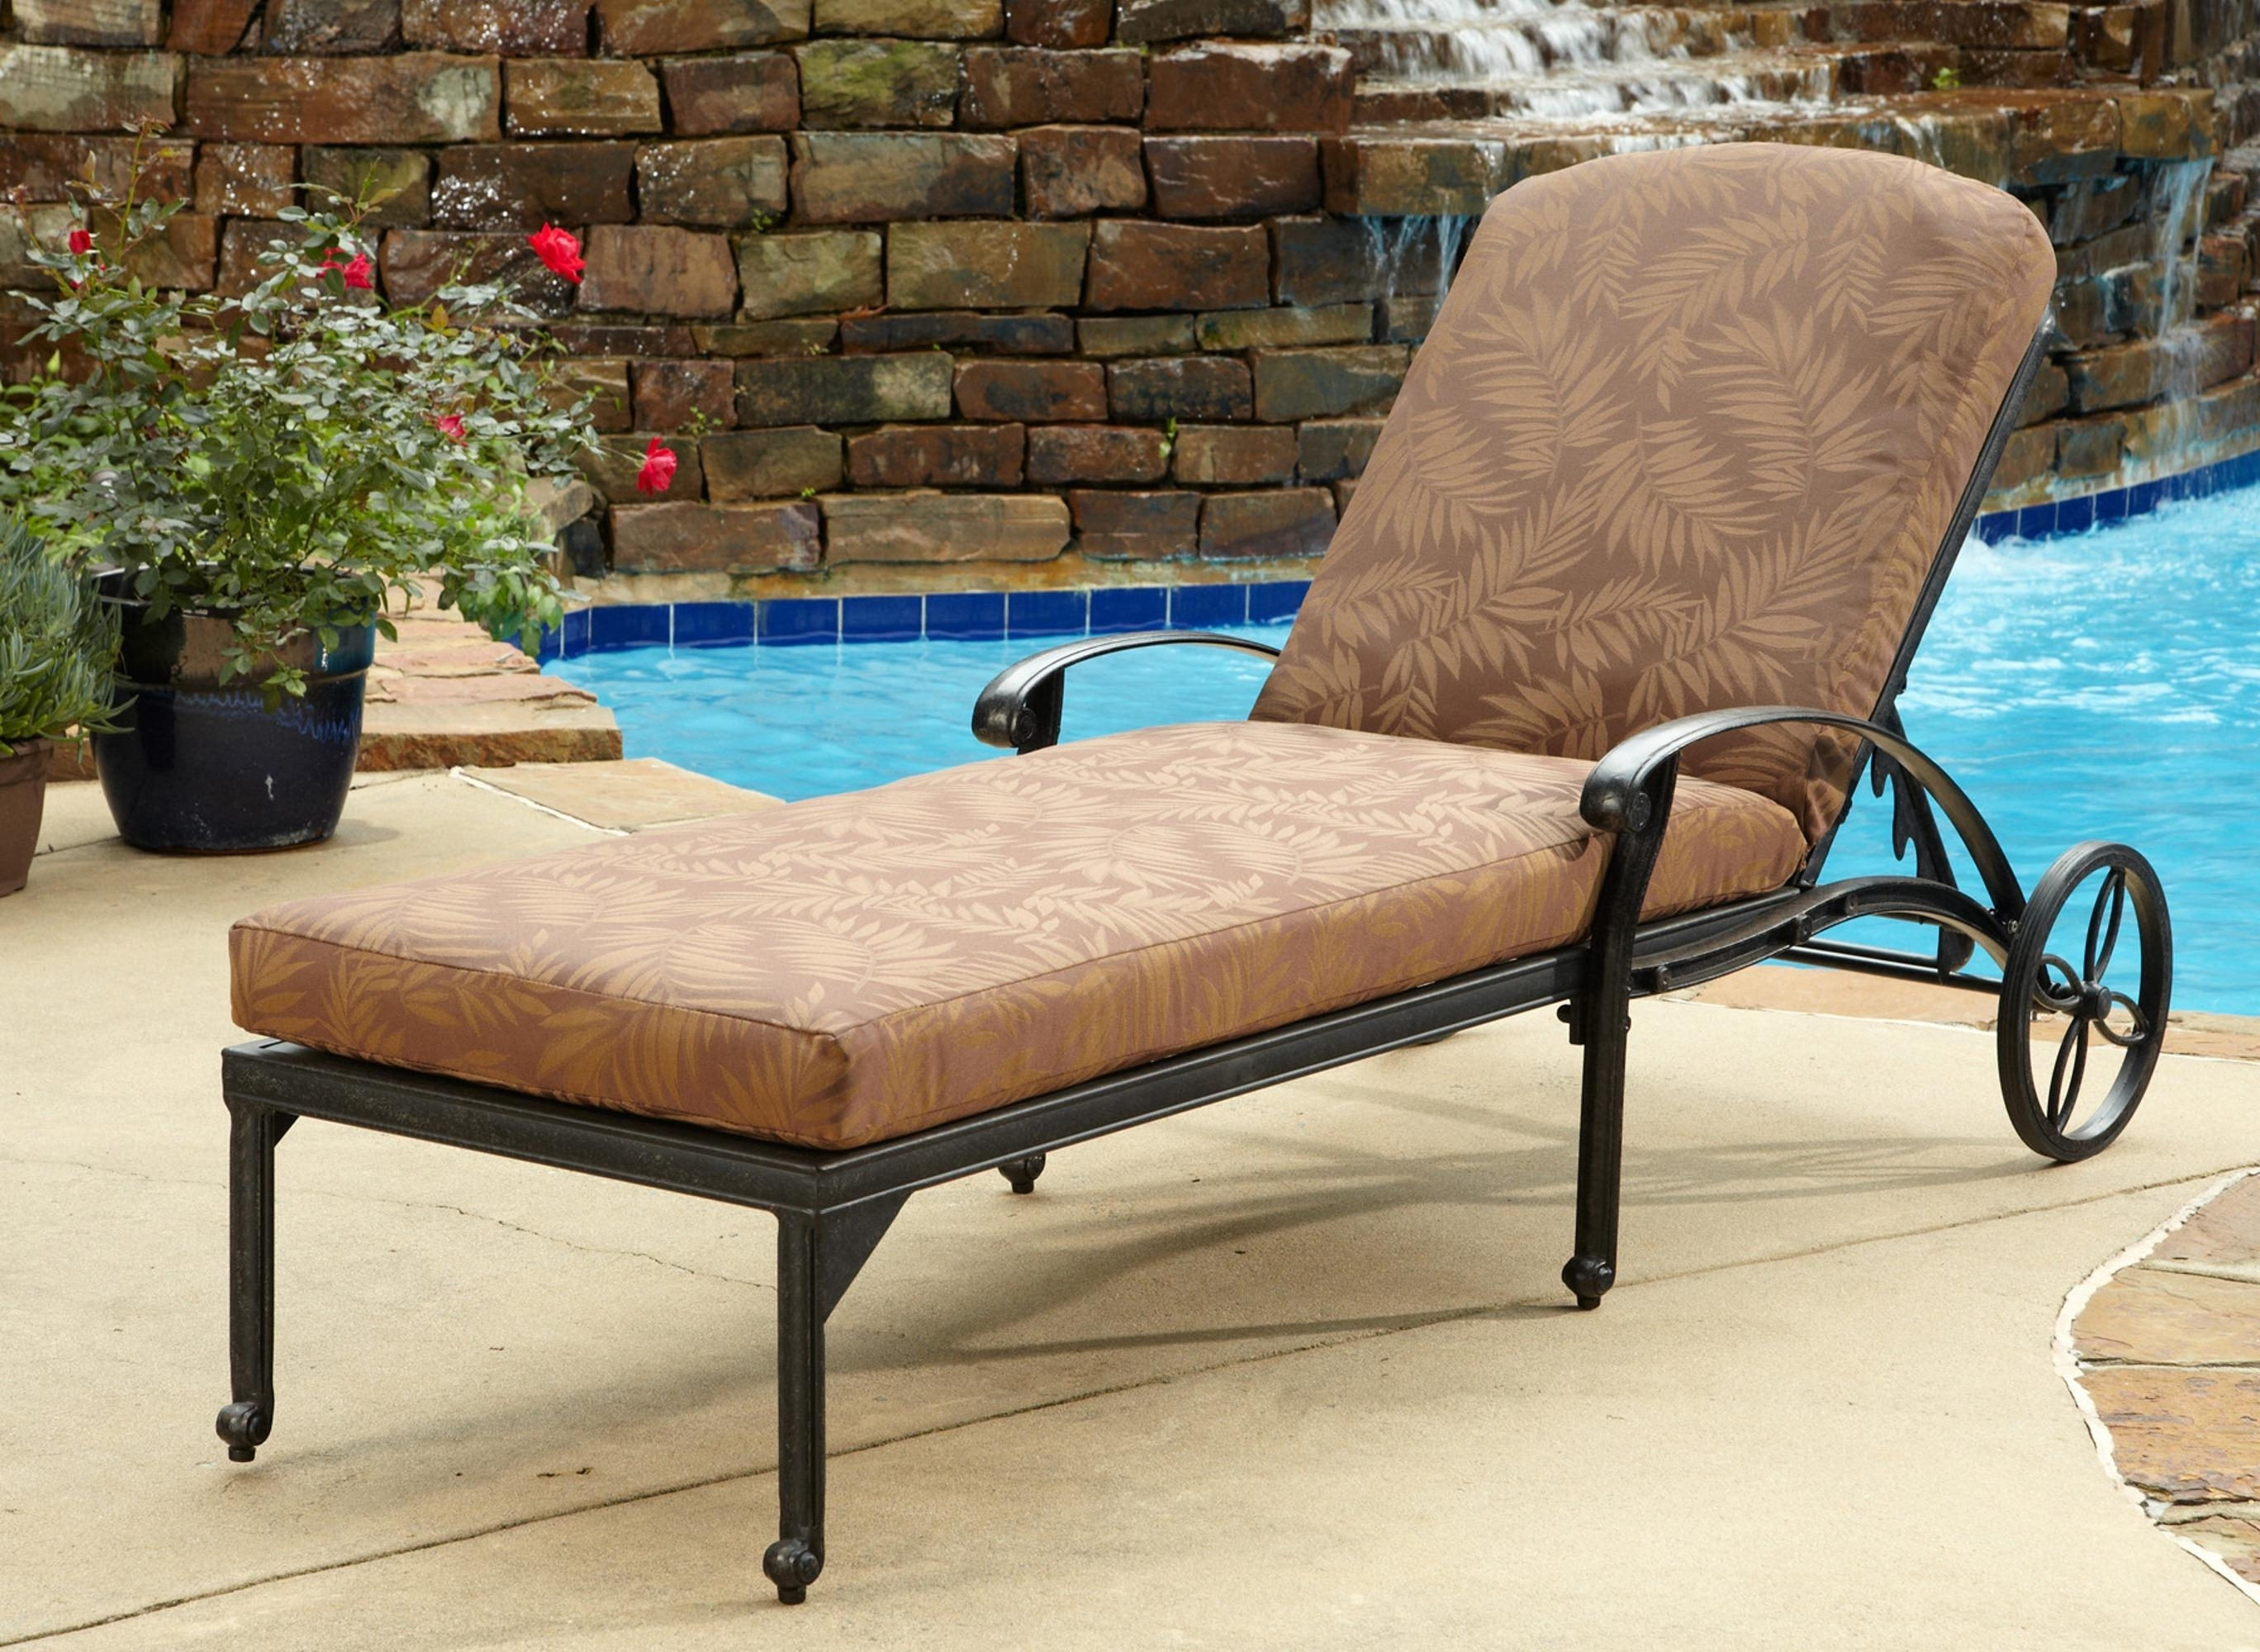 Fabric Outdoor Chaise Lounge Chairs Within Trendy Pool Lounge Chair Fabric • Lounge Chairs Ideas (View 8 of 15)